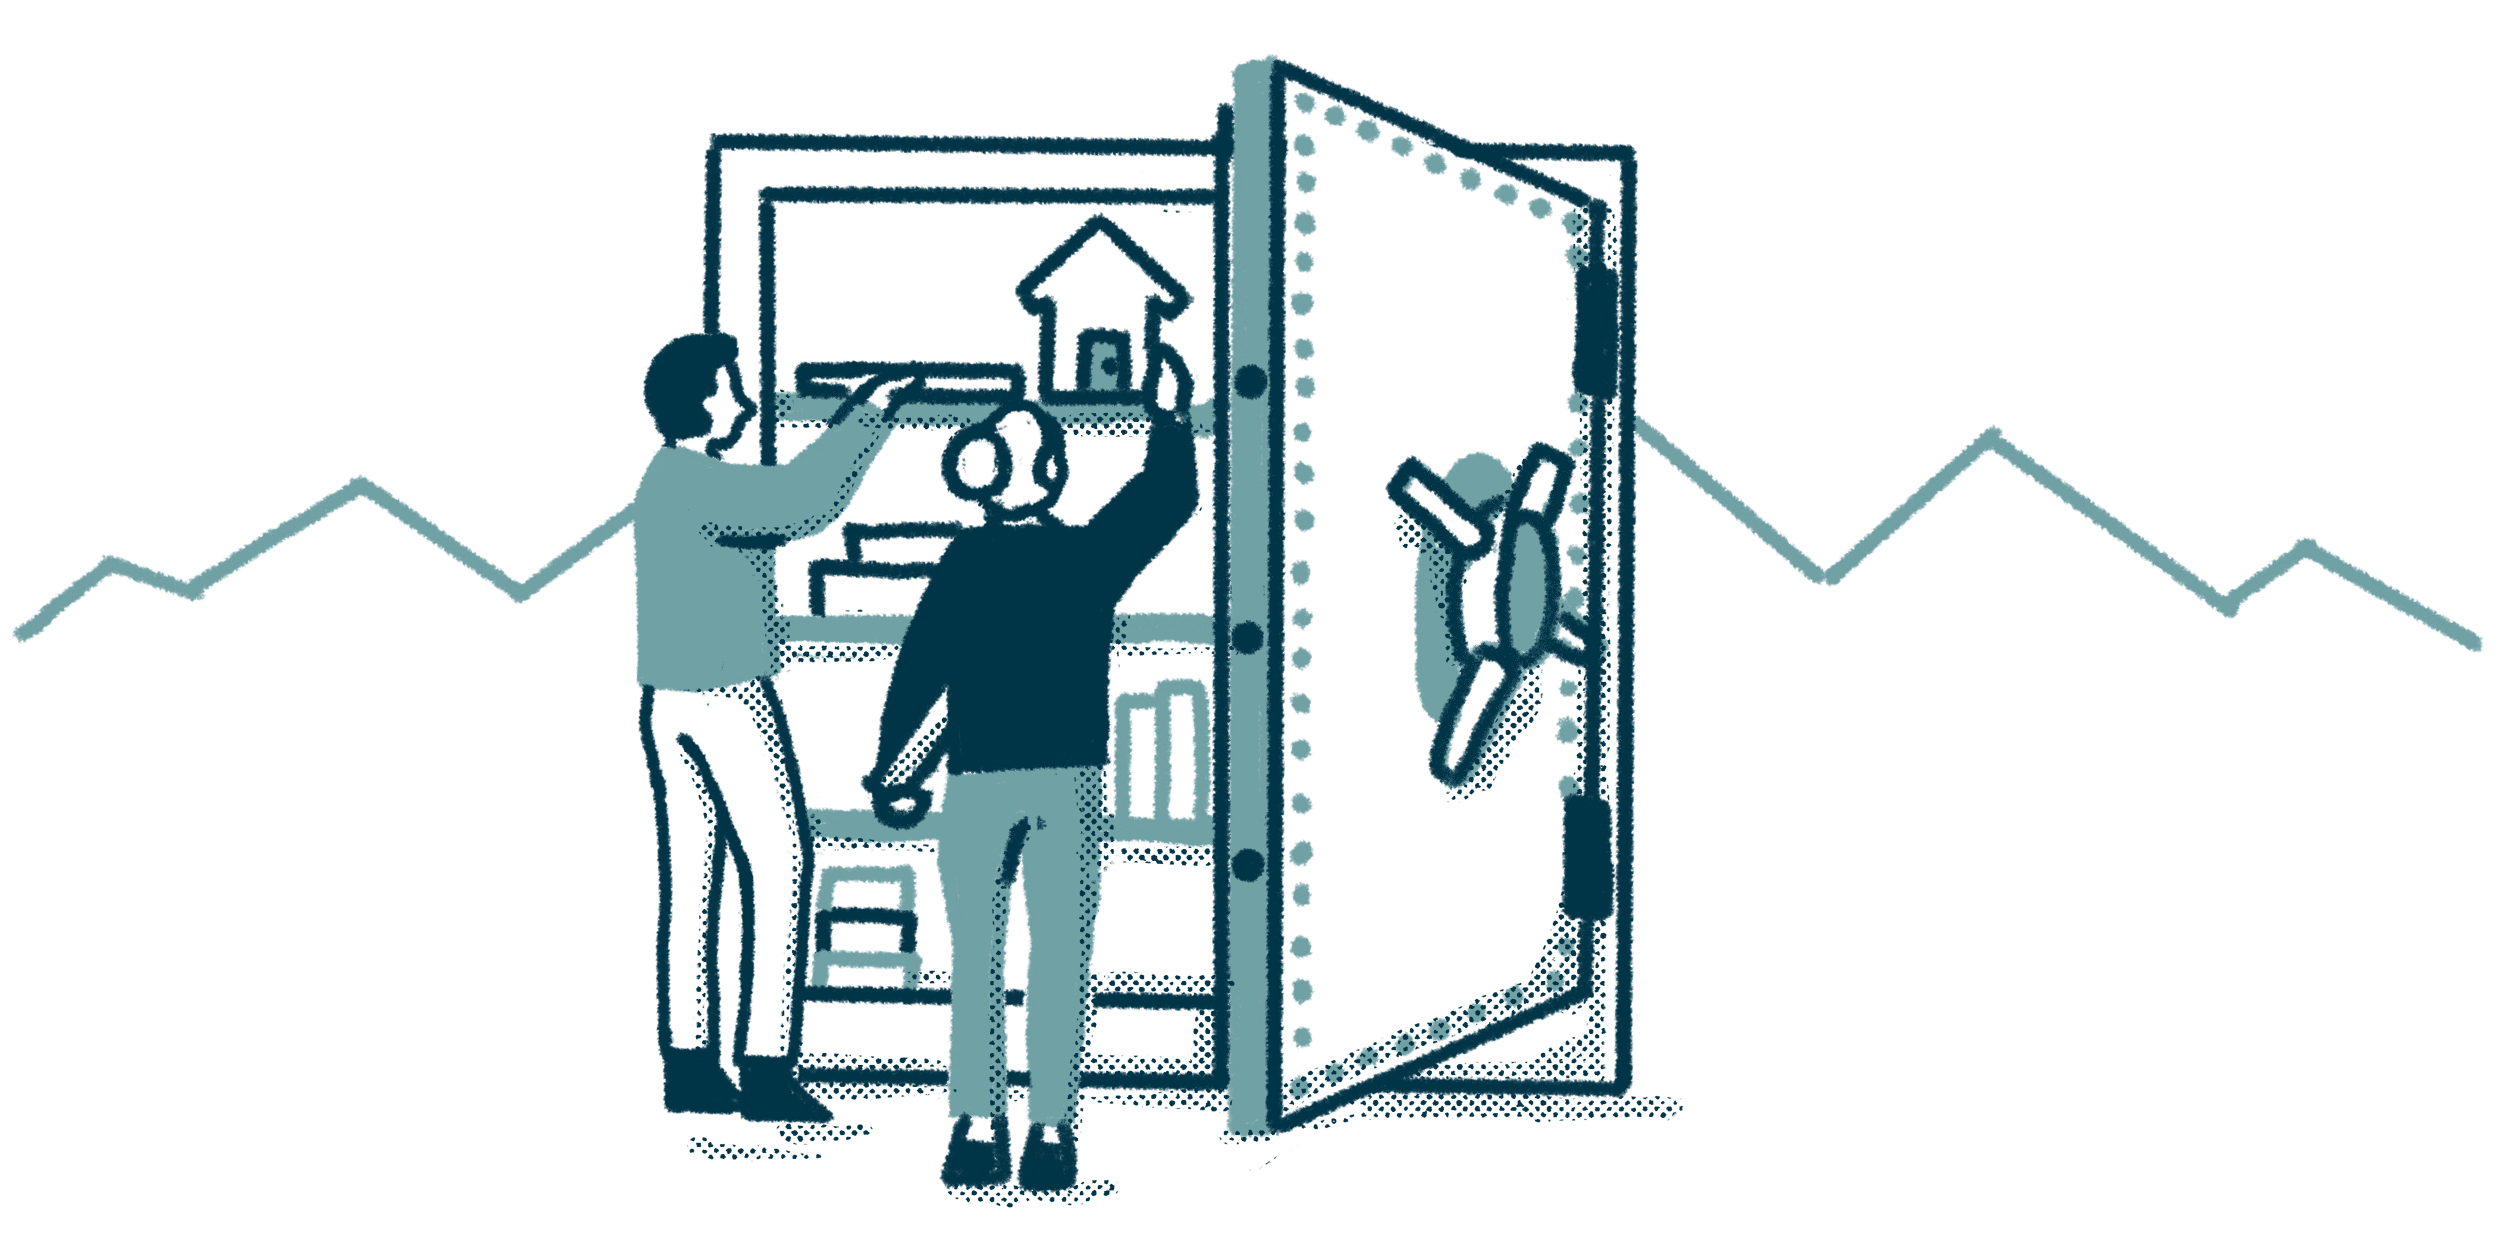 two people placing objects into a giant safe